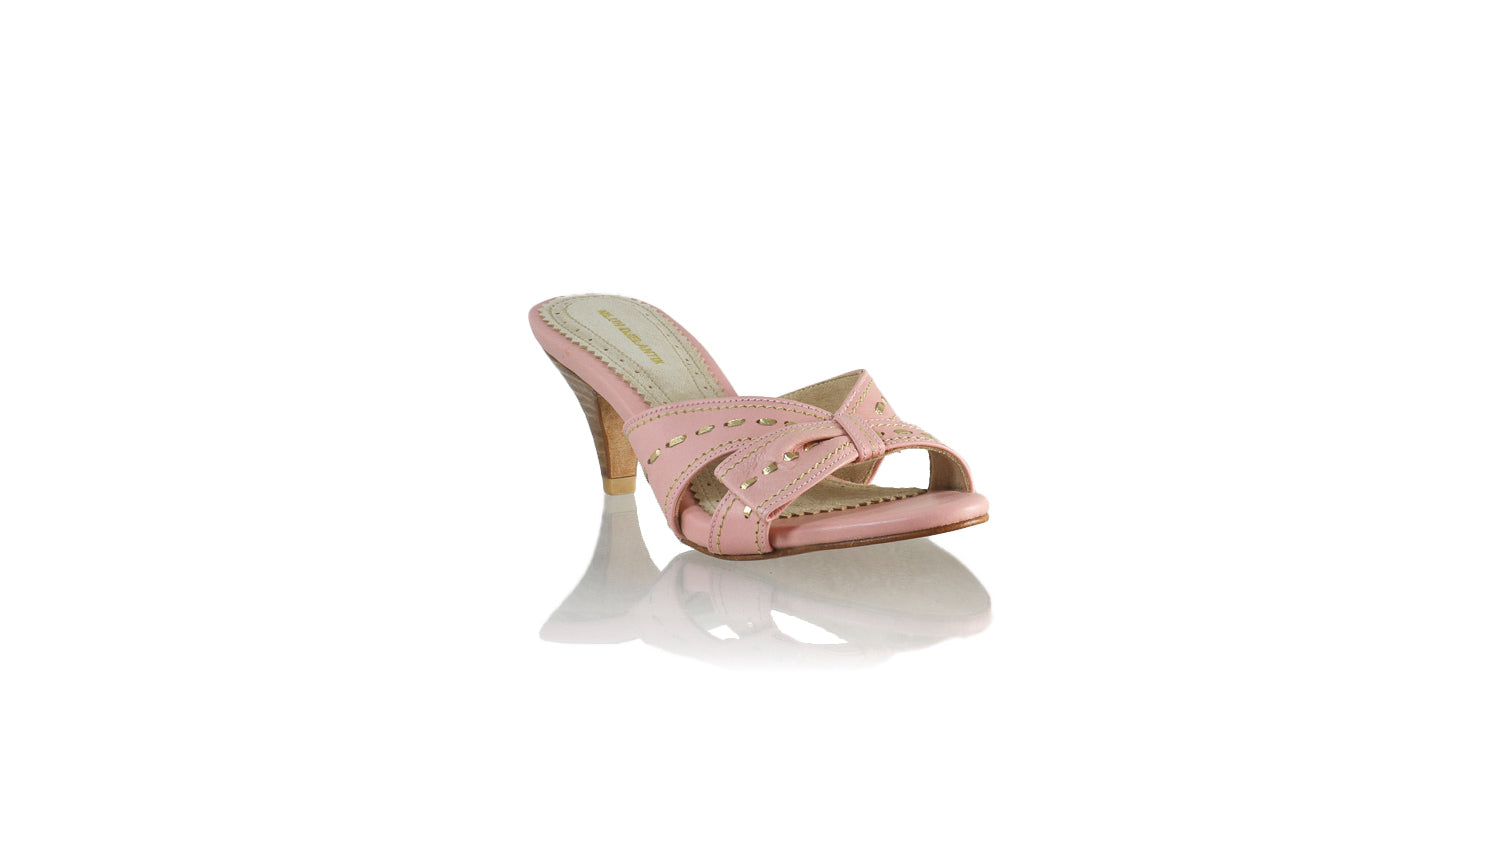 Leather-shoes-Sri 70mm SH - Soft Pink & Gold-sandals midheel-NILUH DJELANTIK-NILUH DJELANTIK